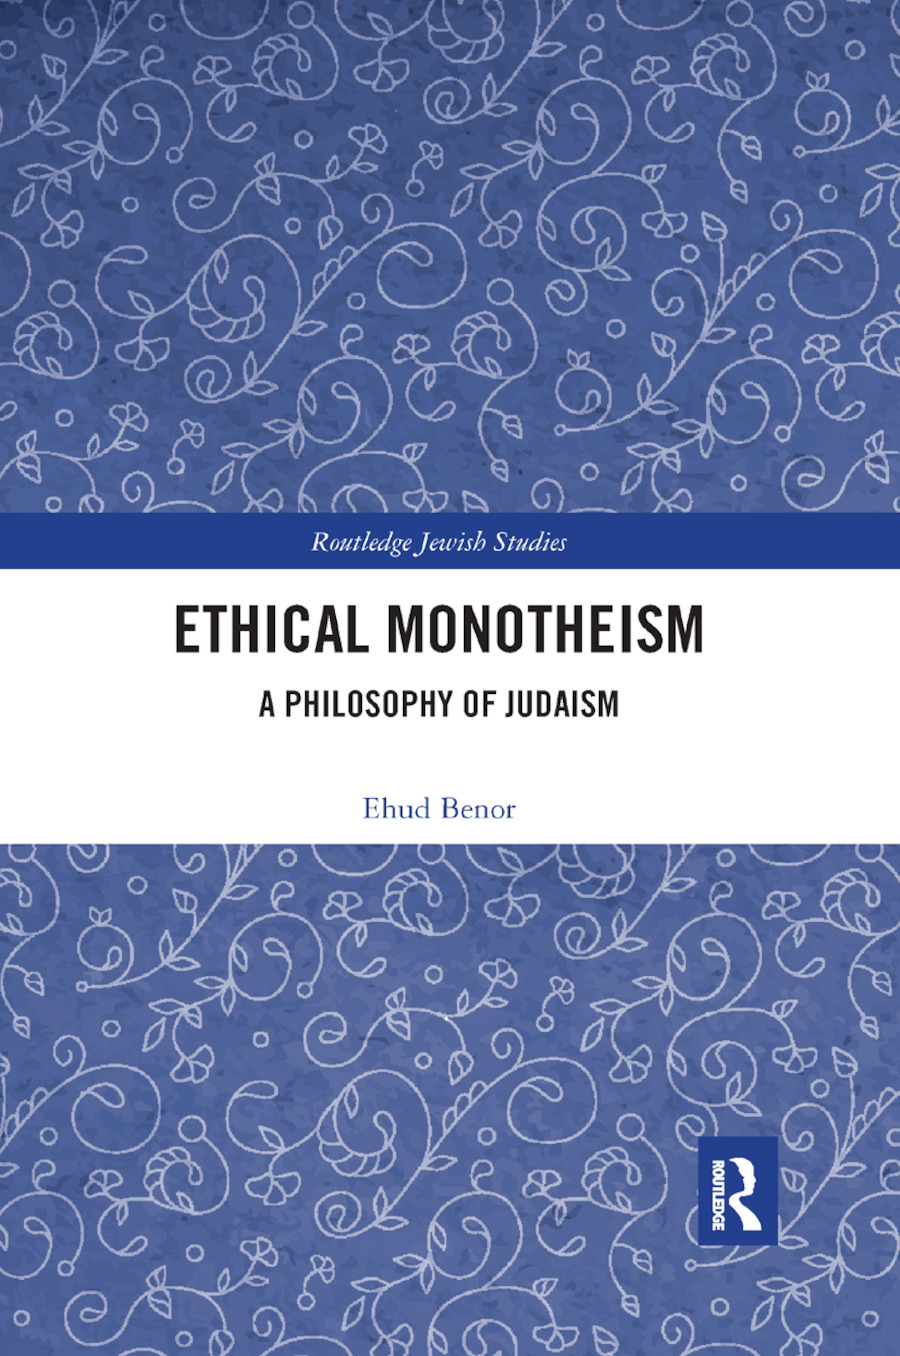 Ethical Monotheism: A Philosophy of Judaism book cover